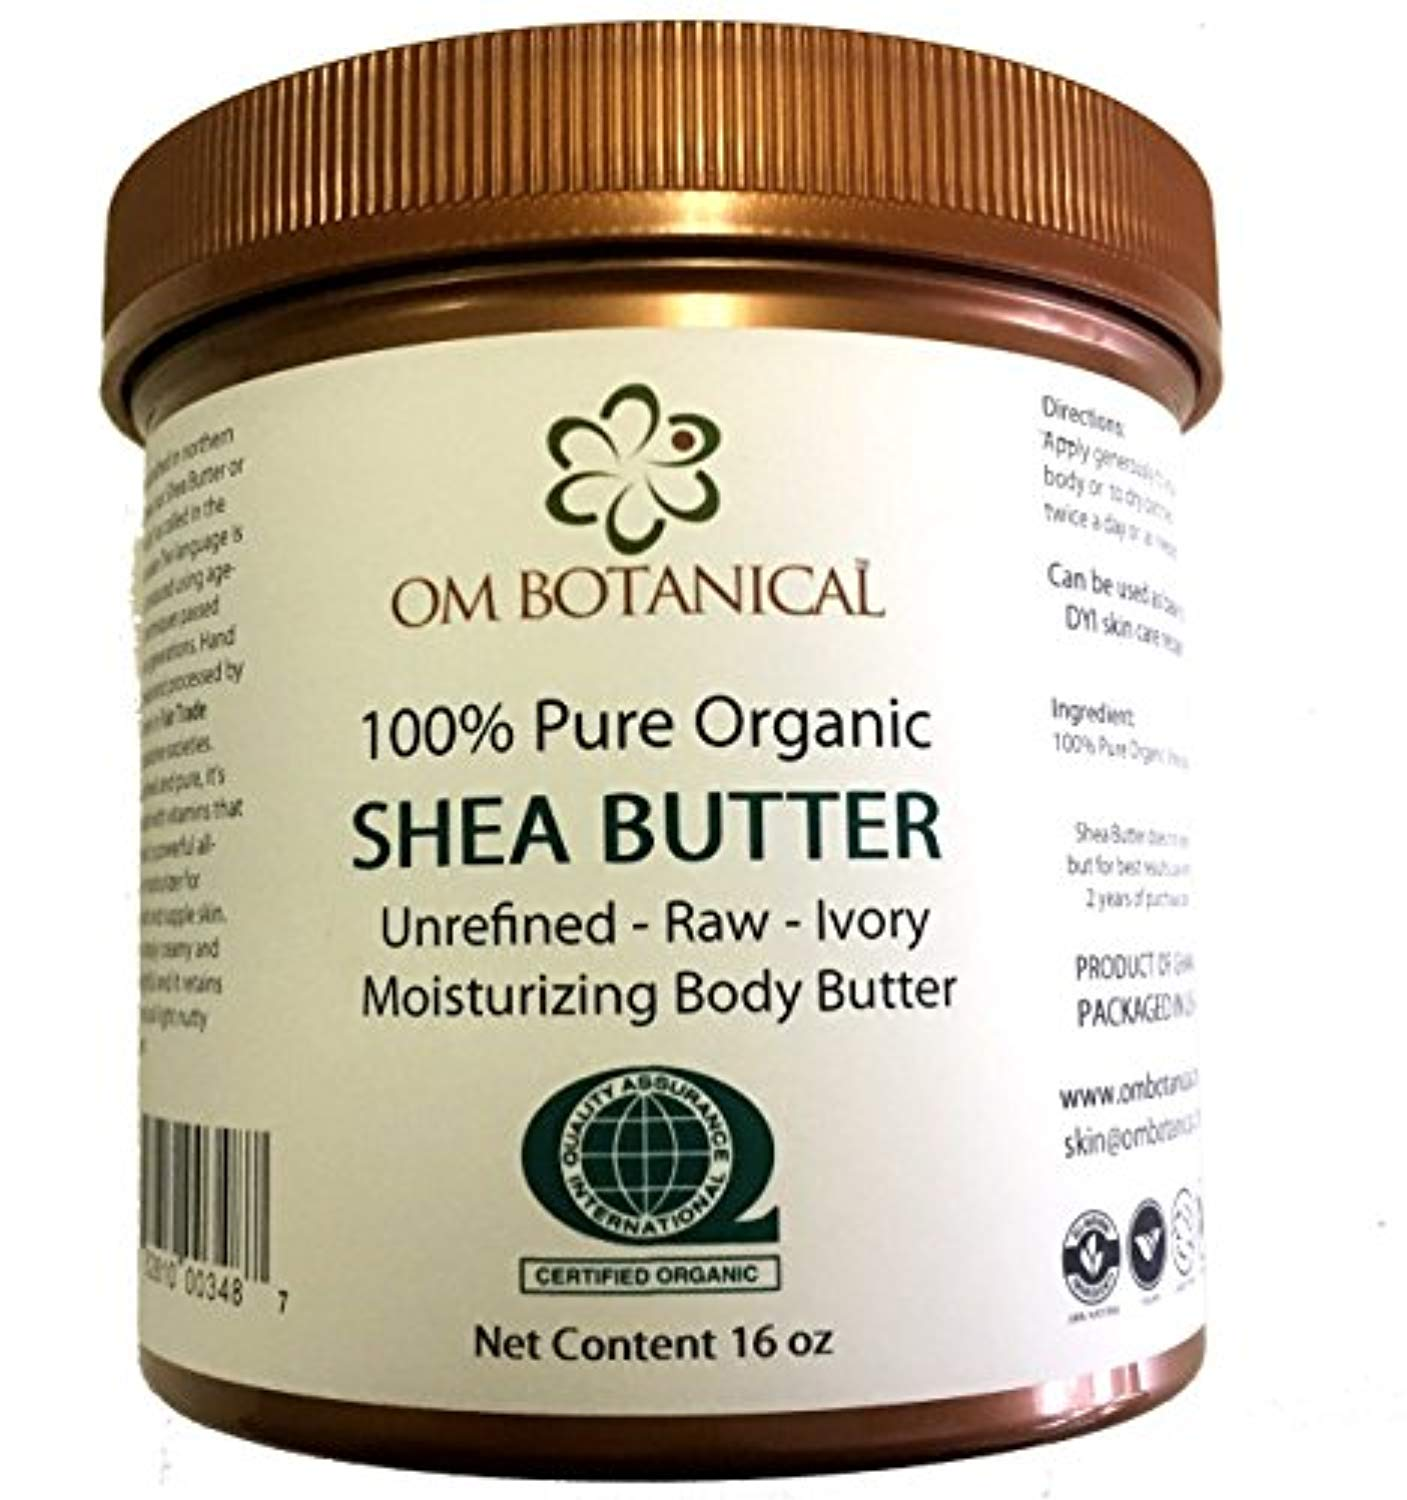 Certified Organic AFRICAN SHEA BUTTER from Ghana 16 oz | Unrefined, Raw, Ivory 100% Pure Body Butter | Skin & Hair Moisturizing, Nourishing and Healing Cream and Base For DIY Skin Care... - Ufumbuzi - Home